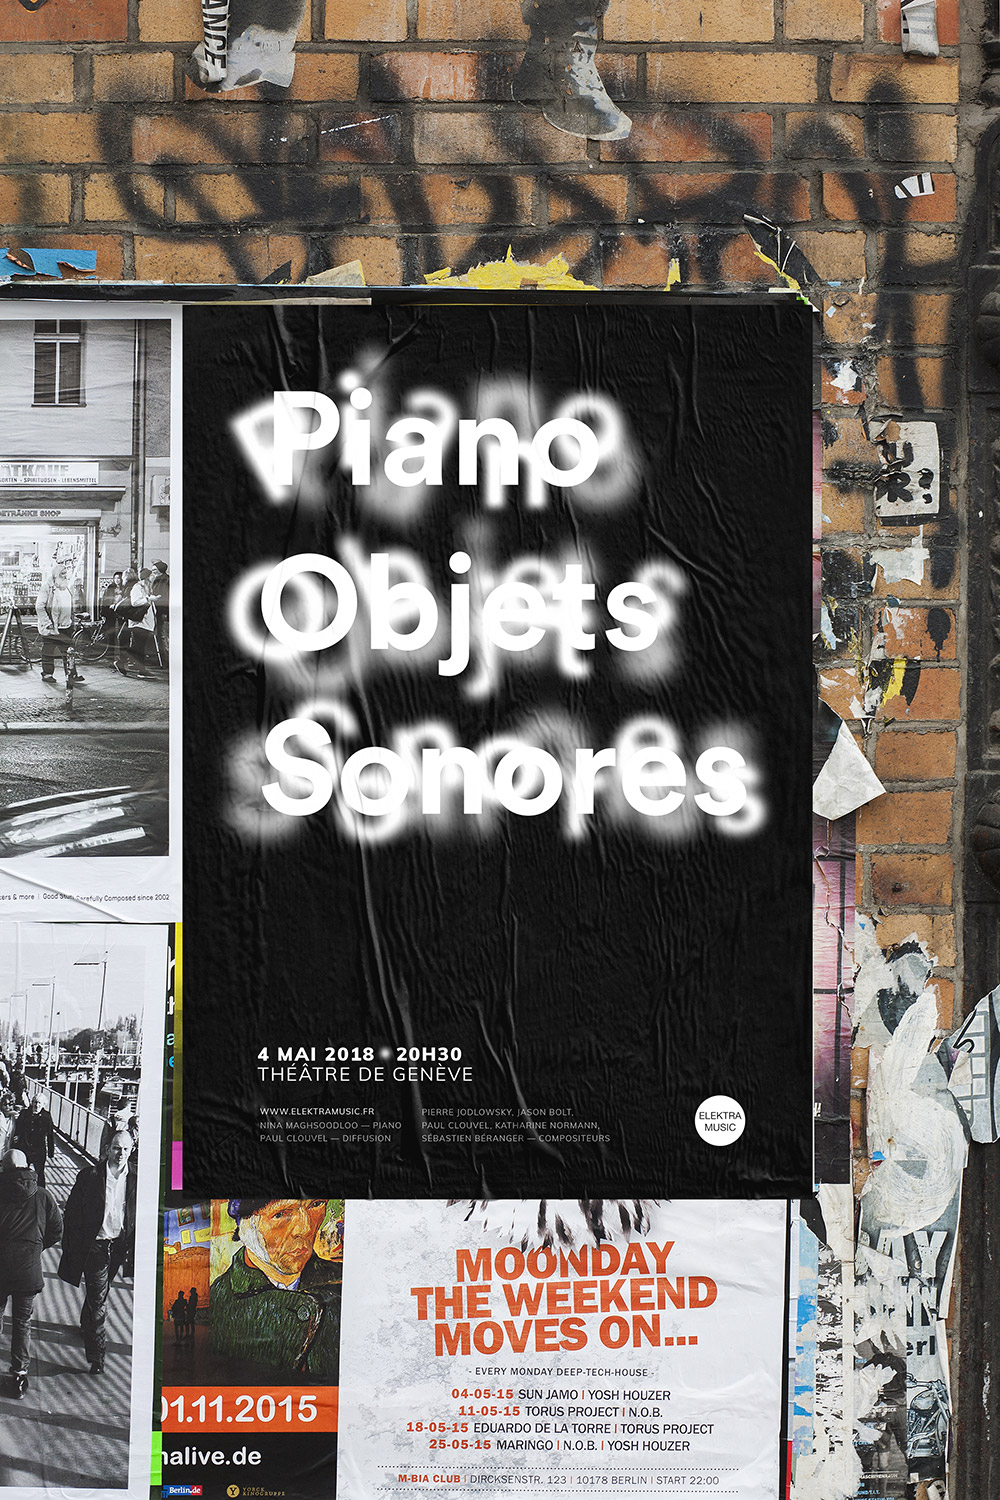 Piano objets sonores proposition affiche 2